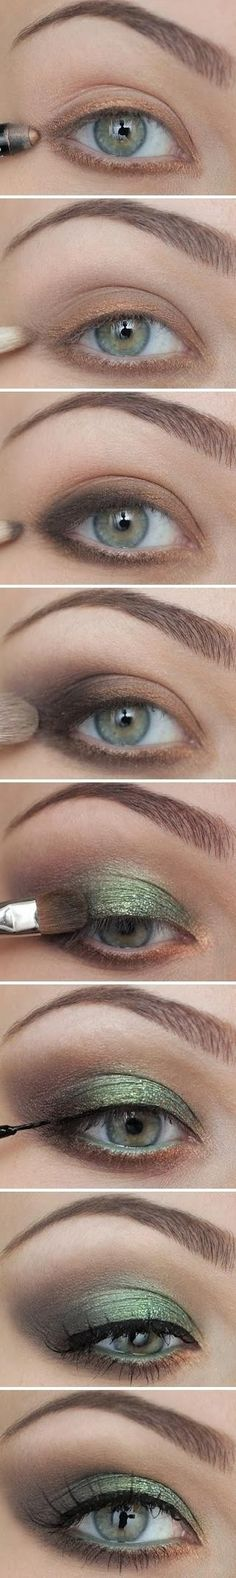 Green and brown - gorgeous